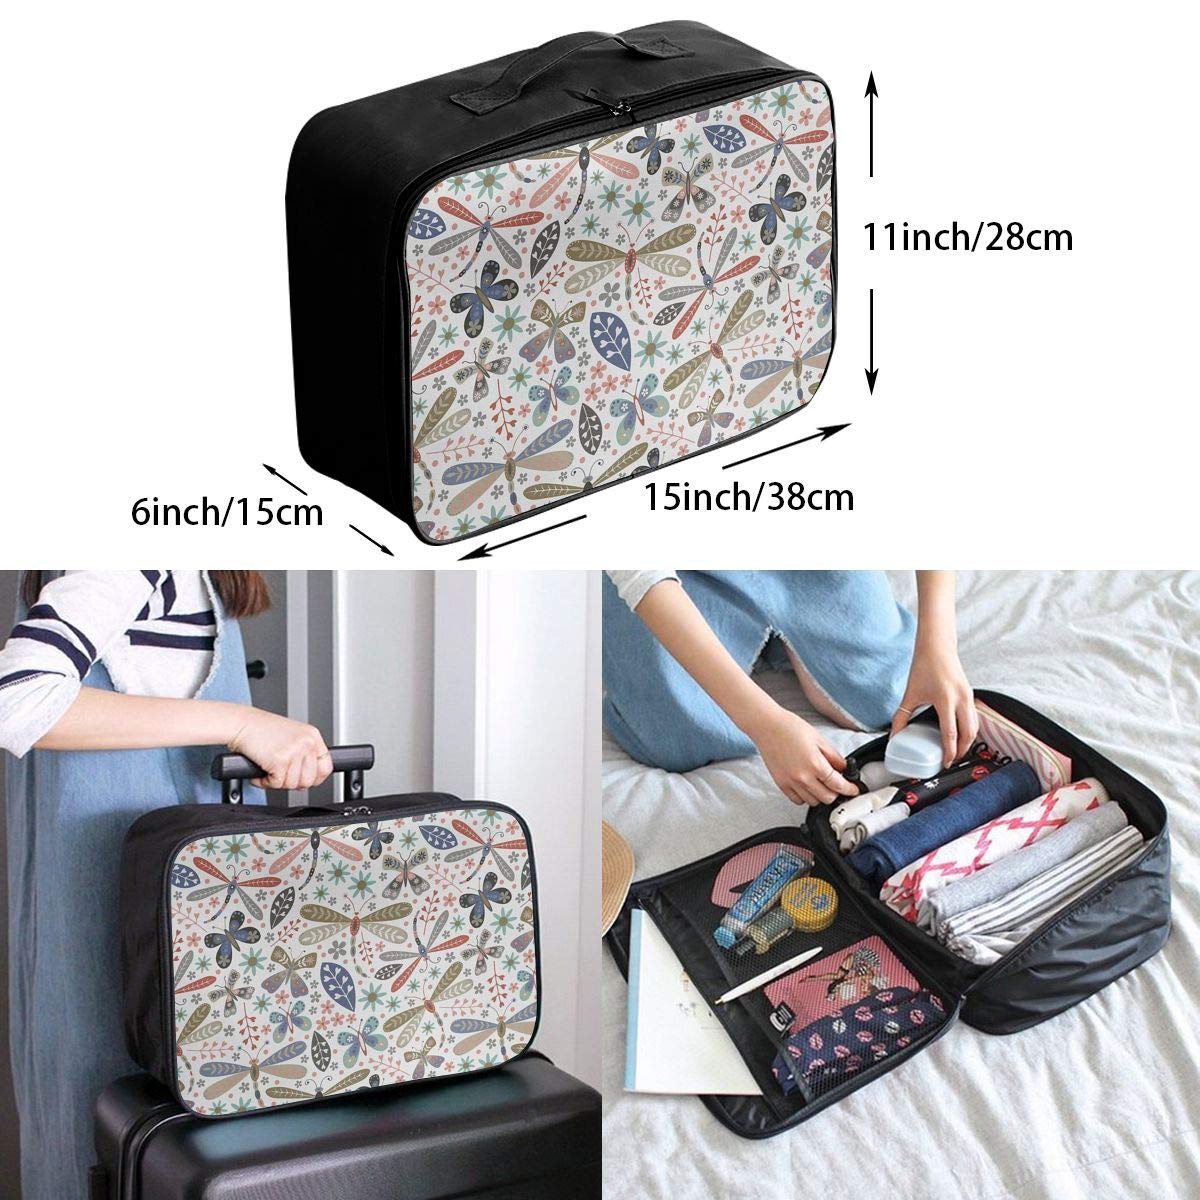 Travel Luggage Duffle Bag Lightweight Portable Handbag Dragonfly Large Capacity Waterproof Foldable Storage Tote